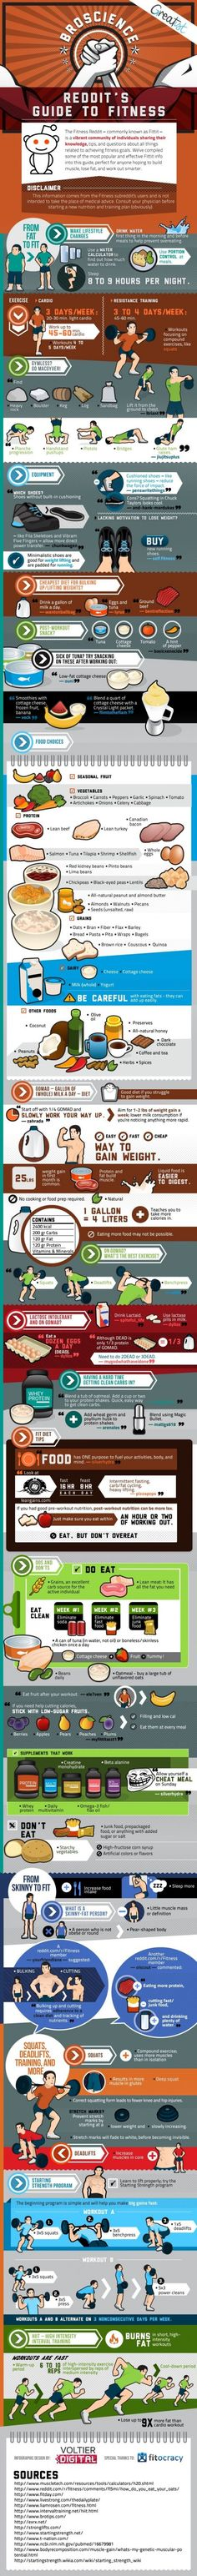 Infographic from health-content startup Greatist may come in handy on your journey toward a healthier you.